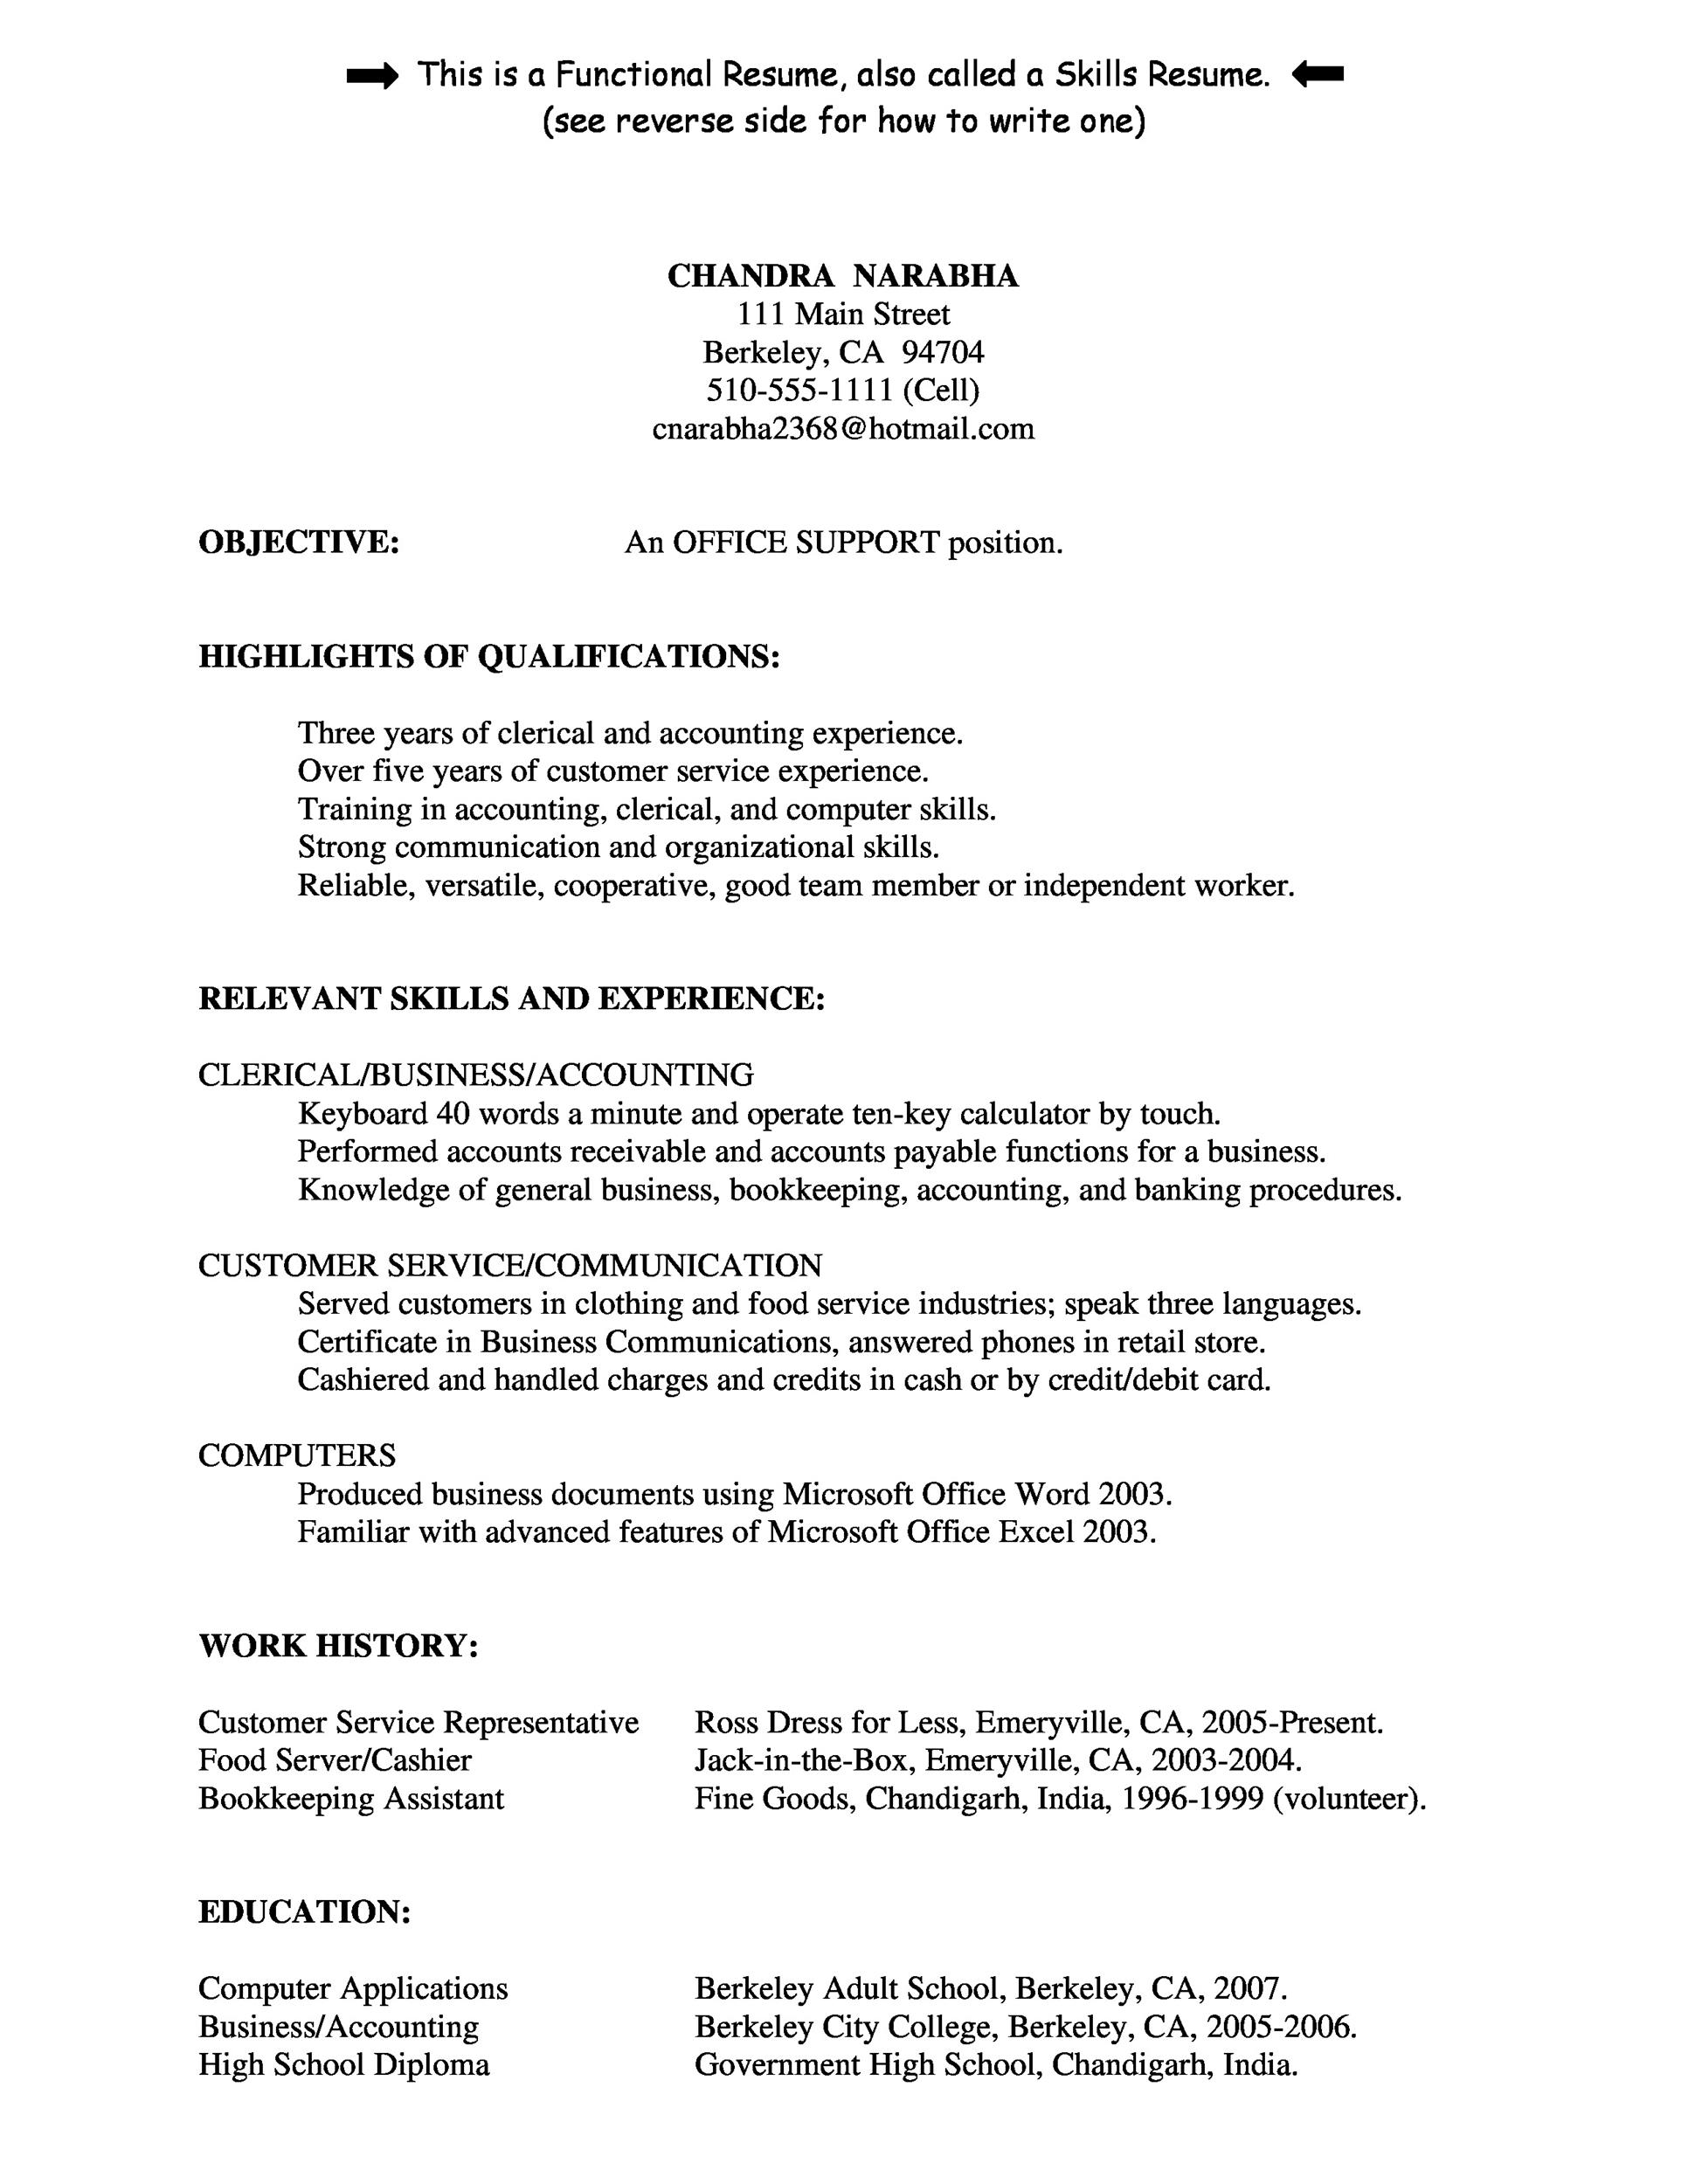 Printable Customer Service Resume Template 34  Relevant Skills Resume